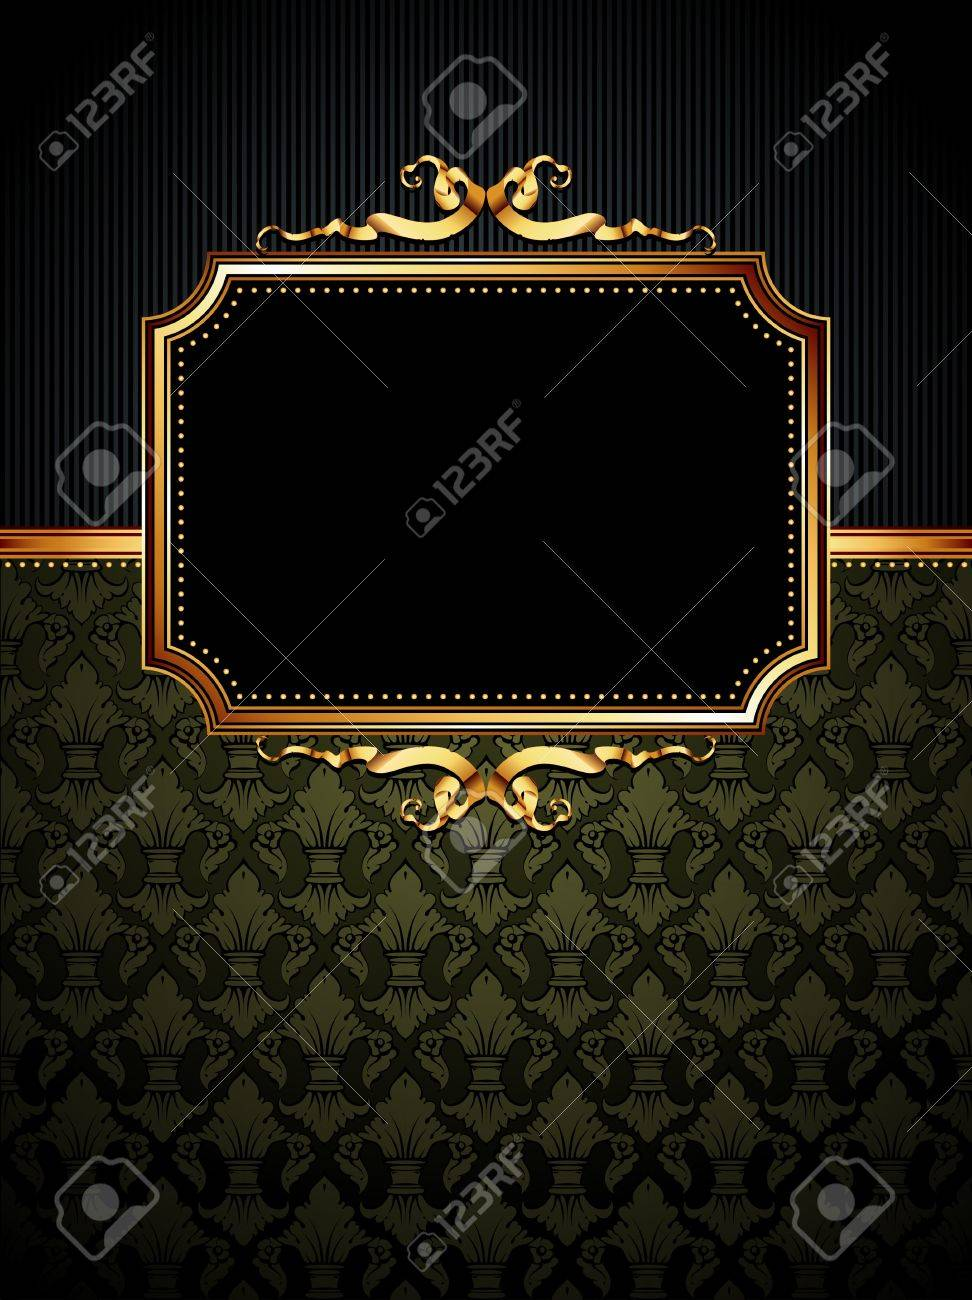 ornate frame Stock Vector - 9150550